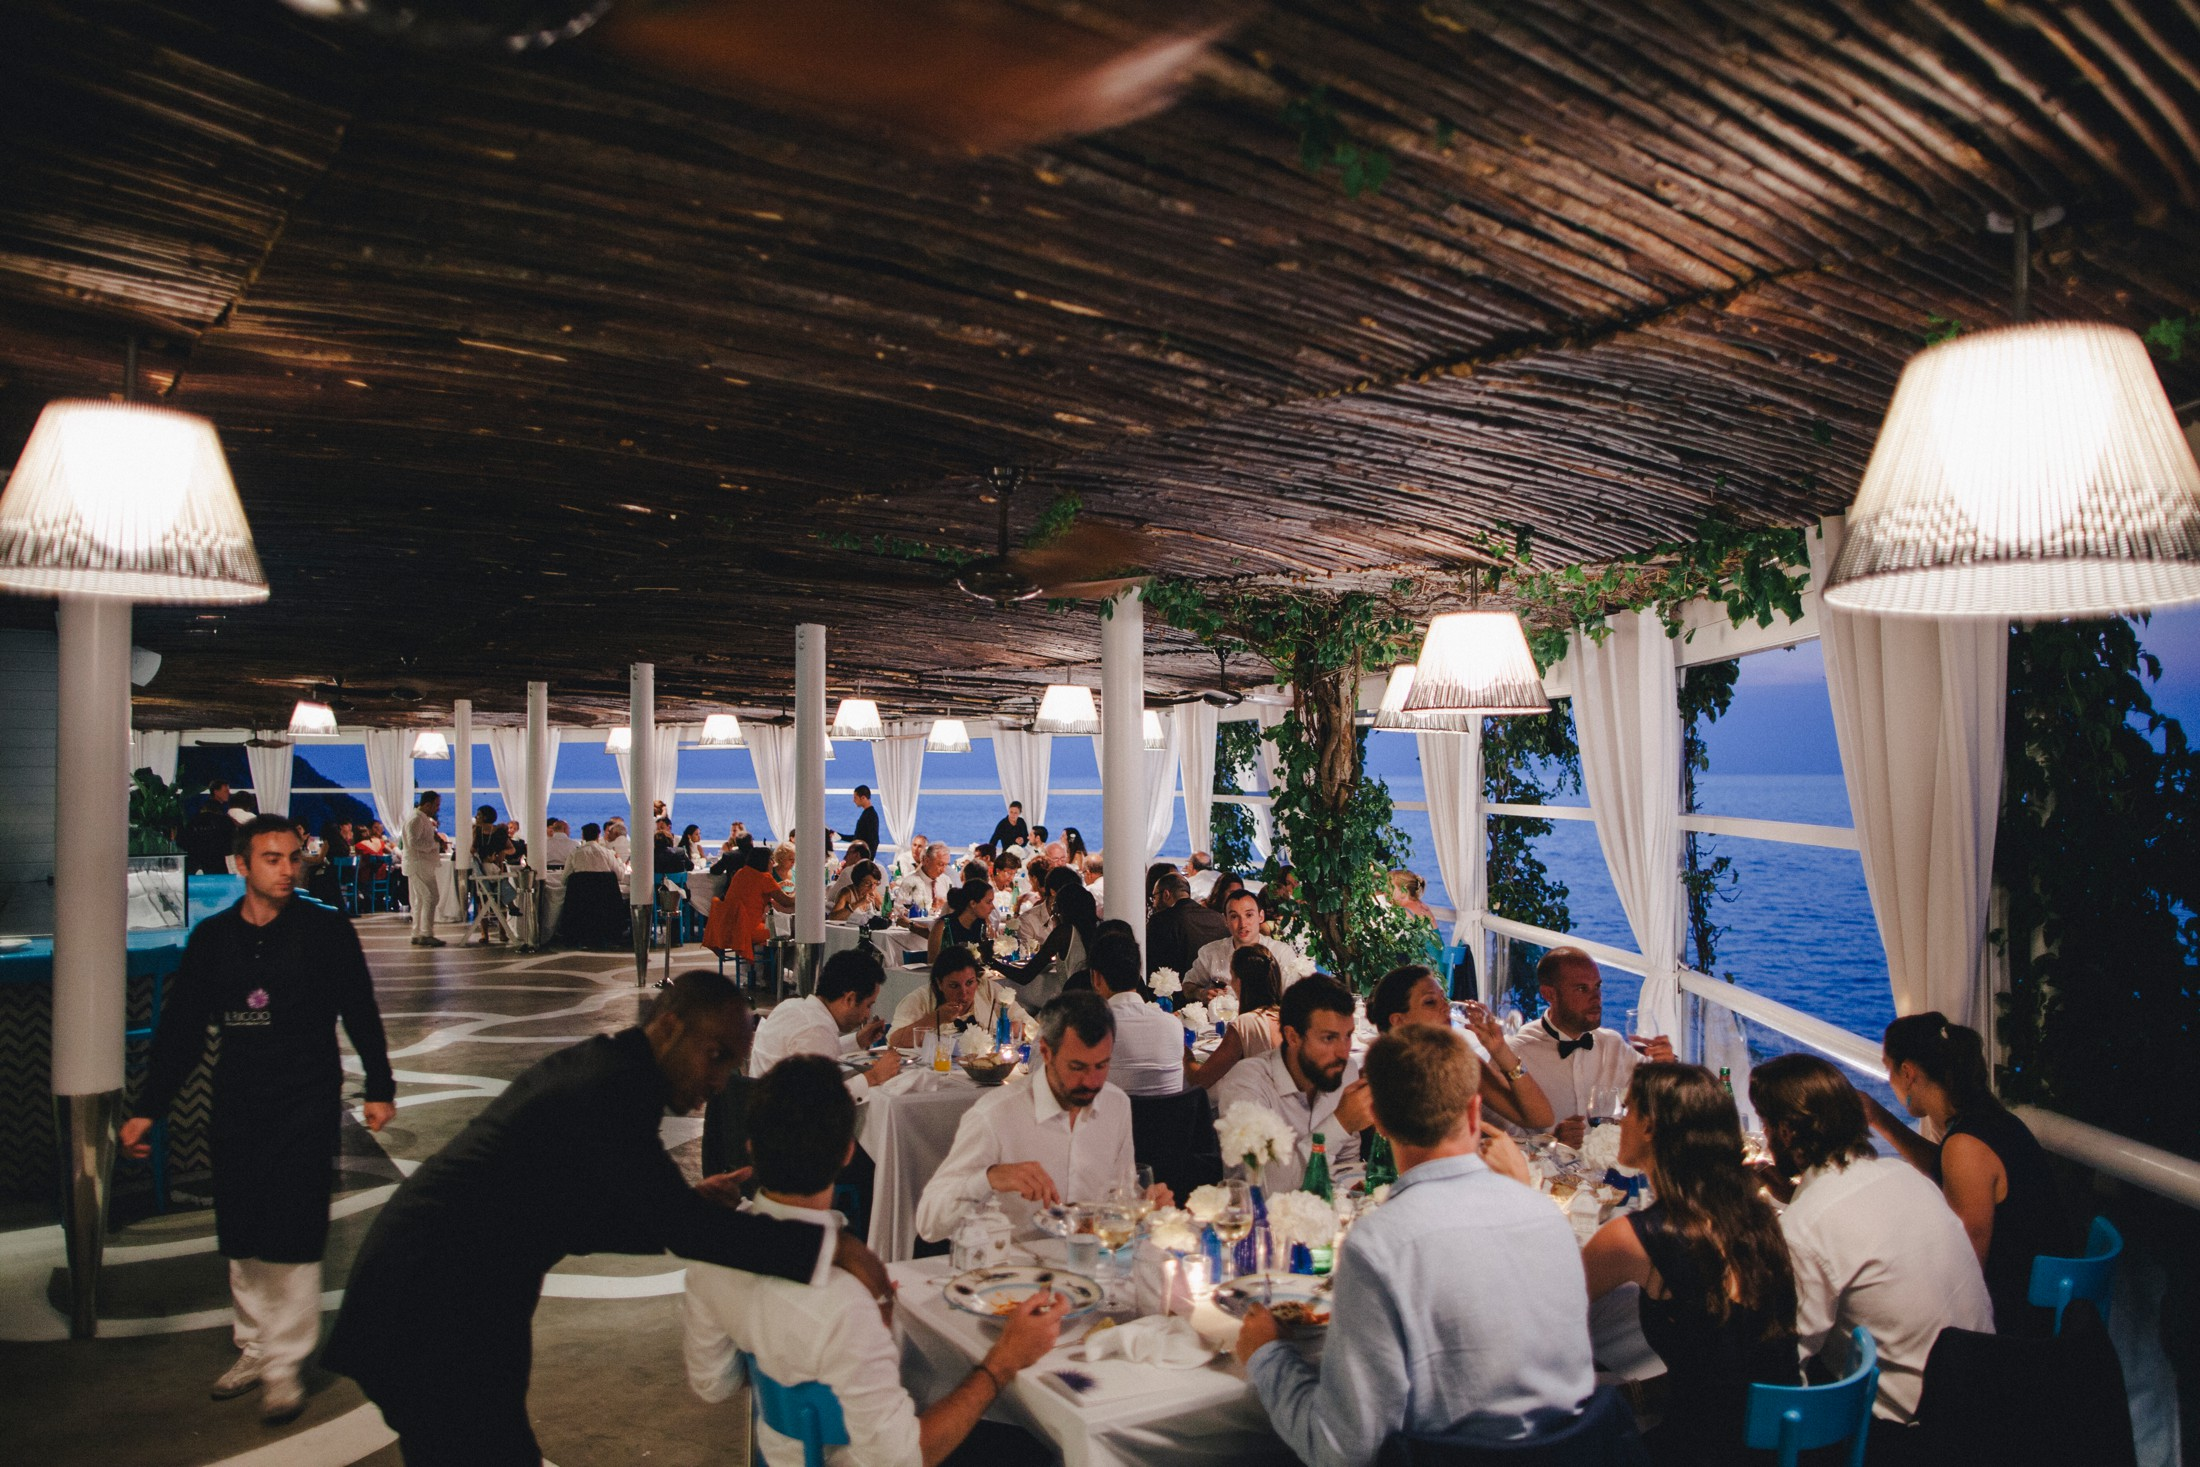 wedding dinner at il riccio restaurant in capri